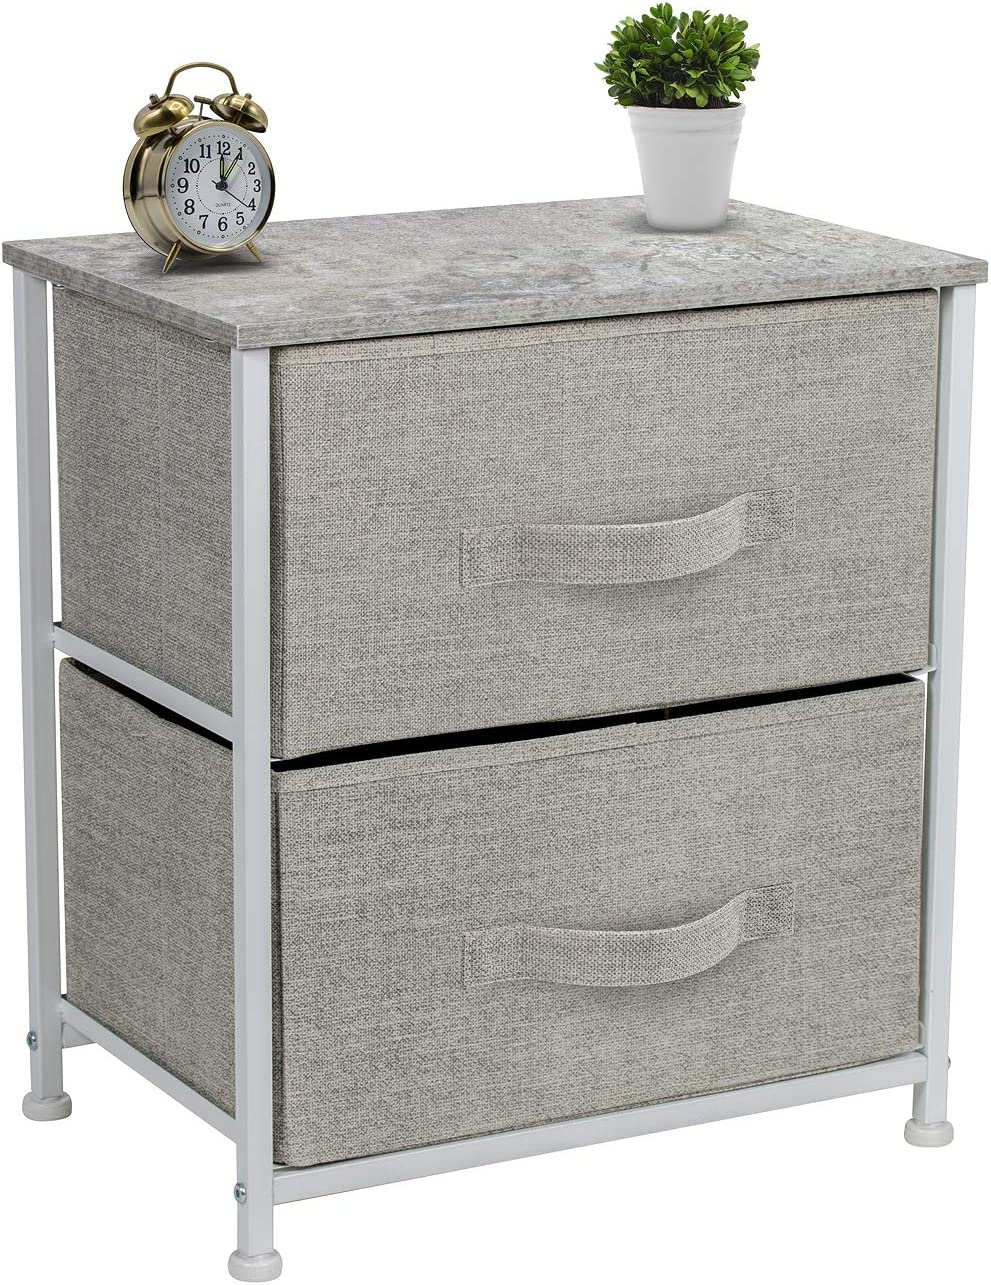 Sorbus Nightstand with 2 Drawers – Bedside Furniture Night Stand End Table Dresser for Home, Bedroom Accessories, Office, College Dorm, Steel Frame, Wood Top, Easy Pull Fabric Bins Gray